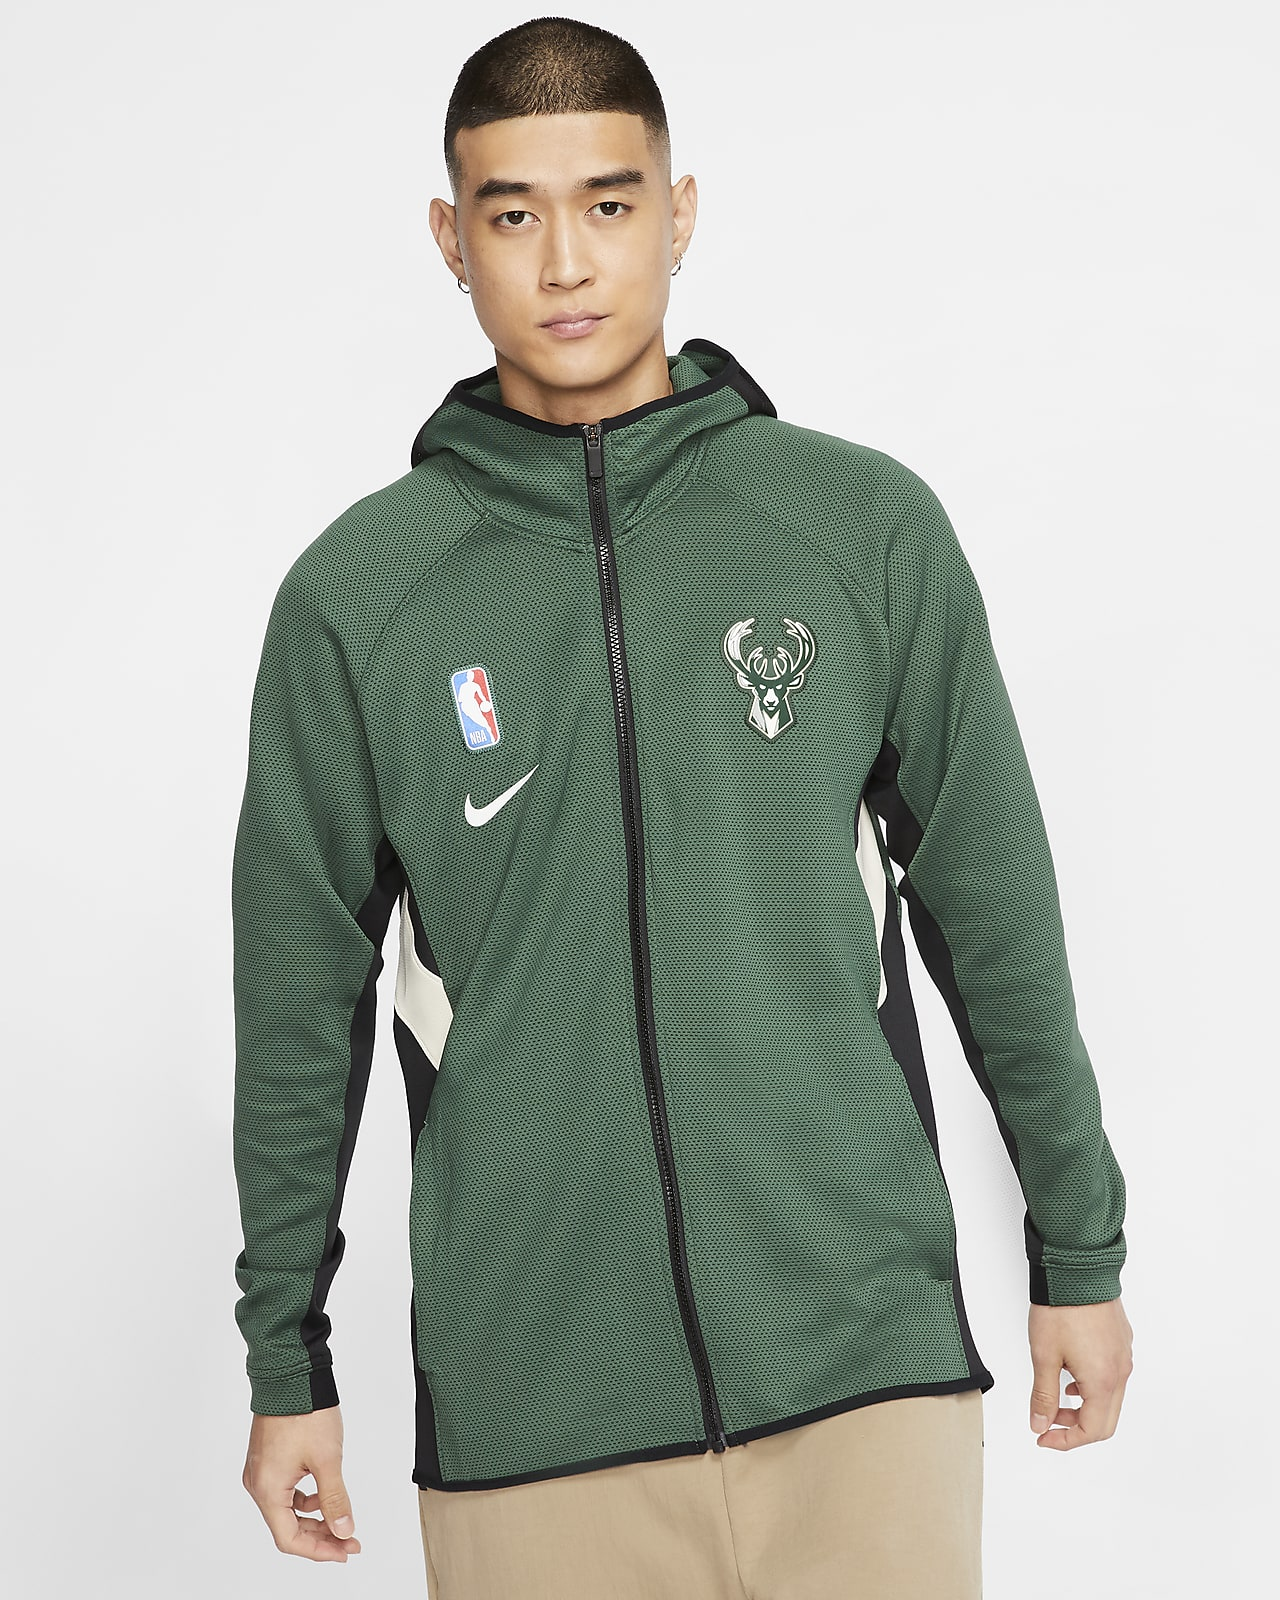 Milwaukee Bucks Nike Therma Flex Showtime Sudadera con capucha de la NBA - Hombre